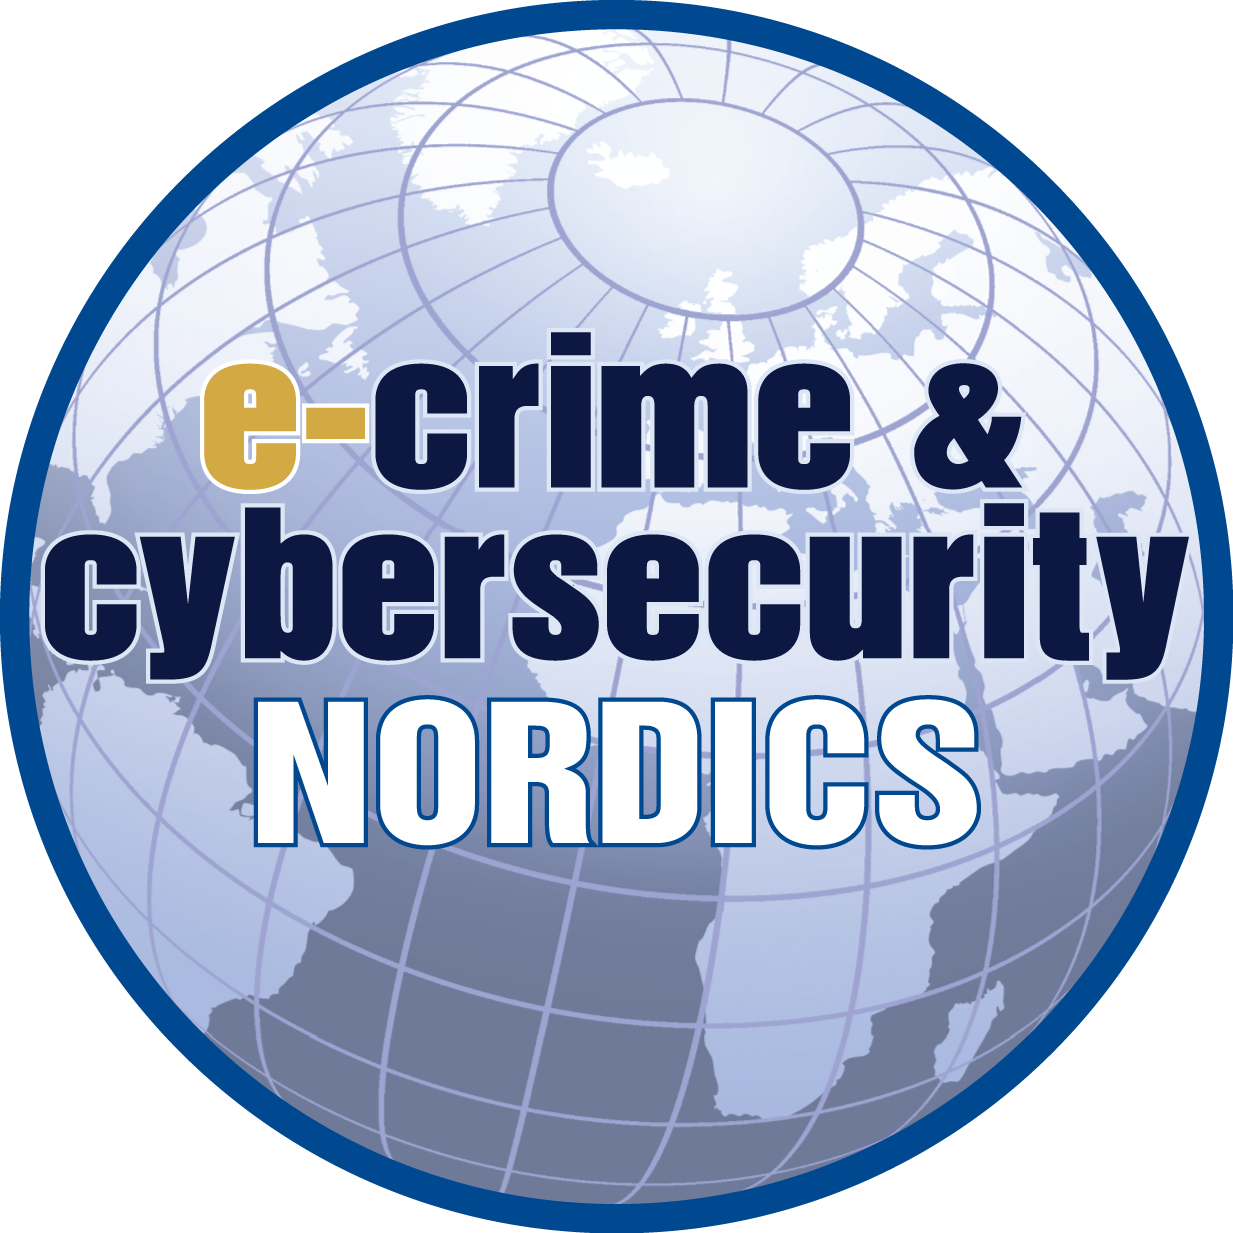 e-Crime & Cybersecurity Nordics 2019